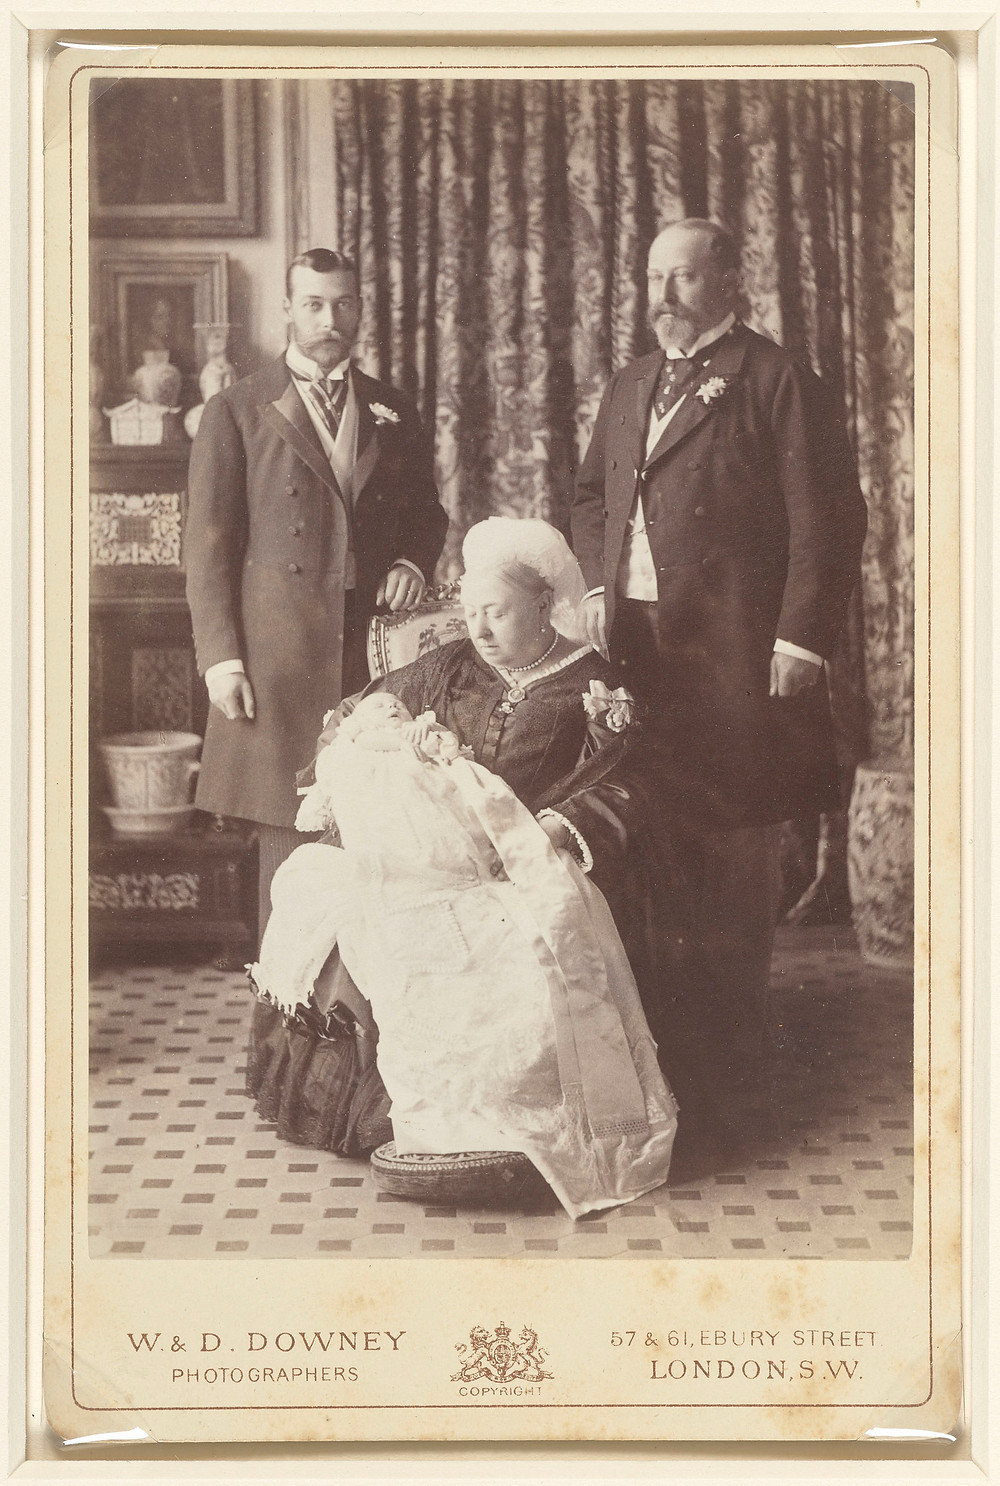 The Four Generations, White Lodge, Richmond 16 Jul 1894. Queen Victoria, Edward VII, George V & Edward VIII